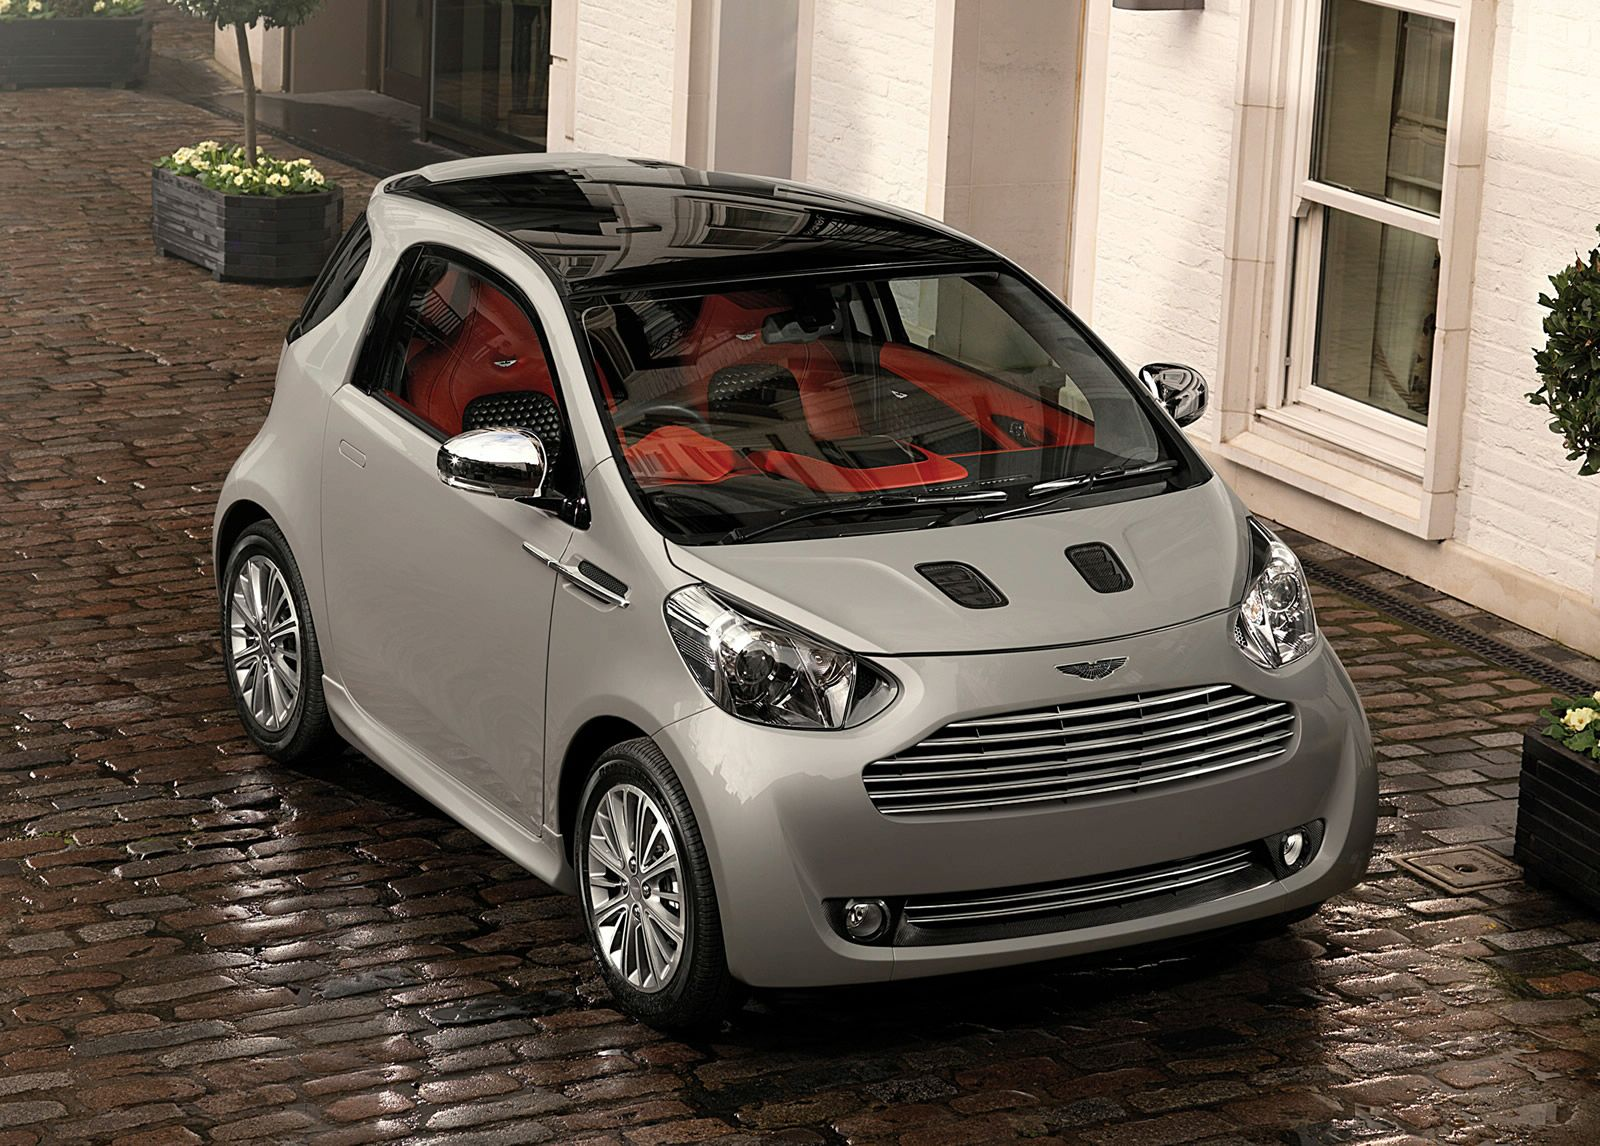 classic cars authority: aston martin cygnet: why?